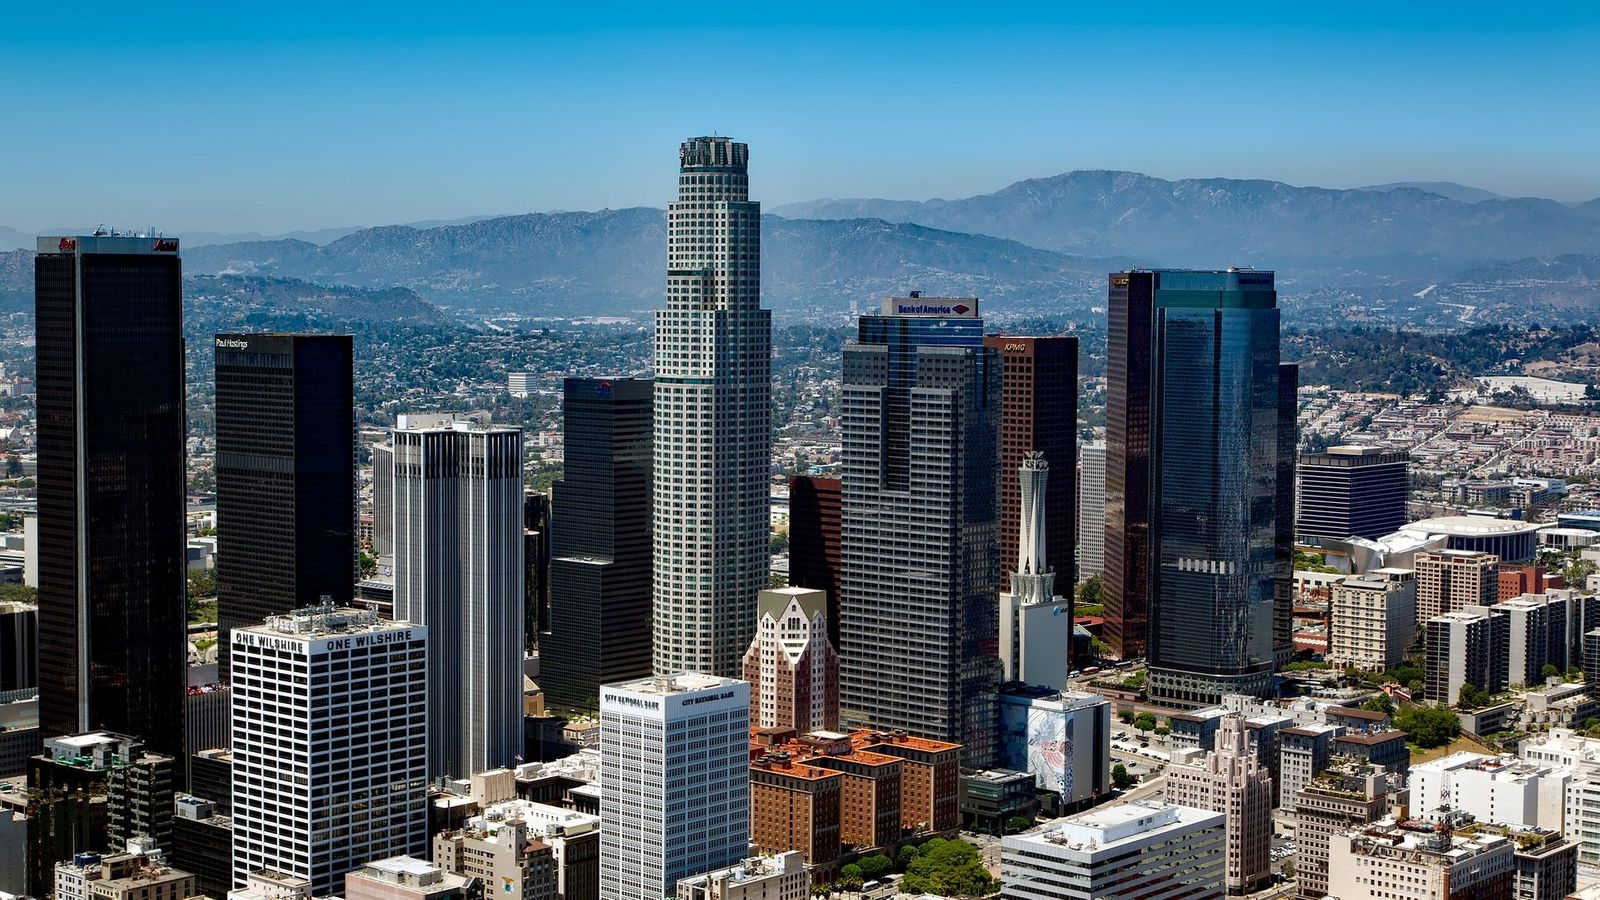 Awesome Los Angeles Skyline - Los Angeles , HD Wallpaper & Backgrounds